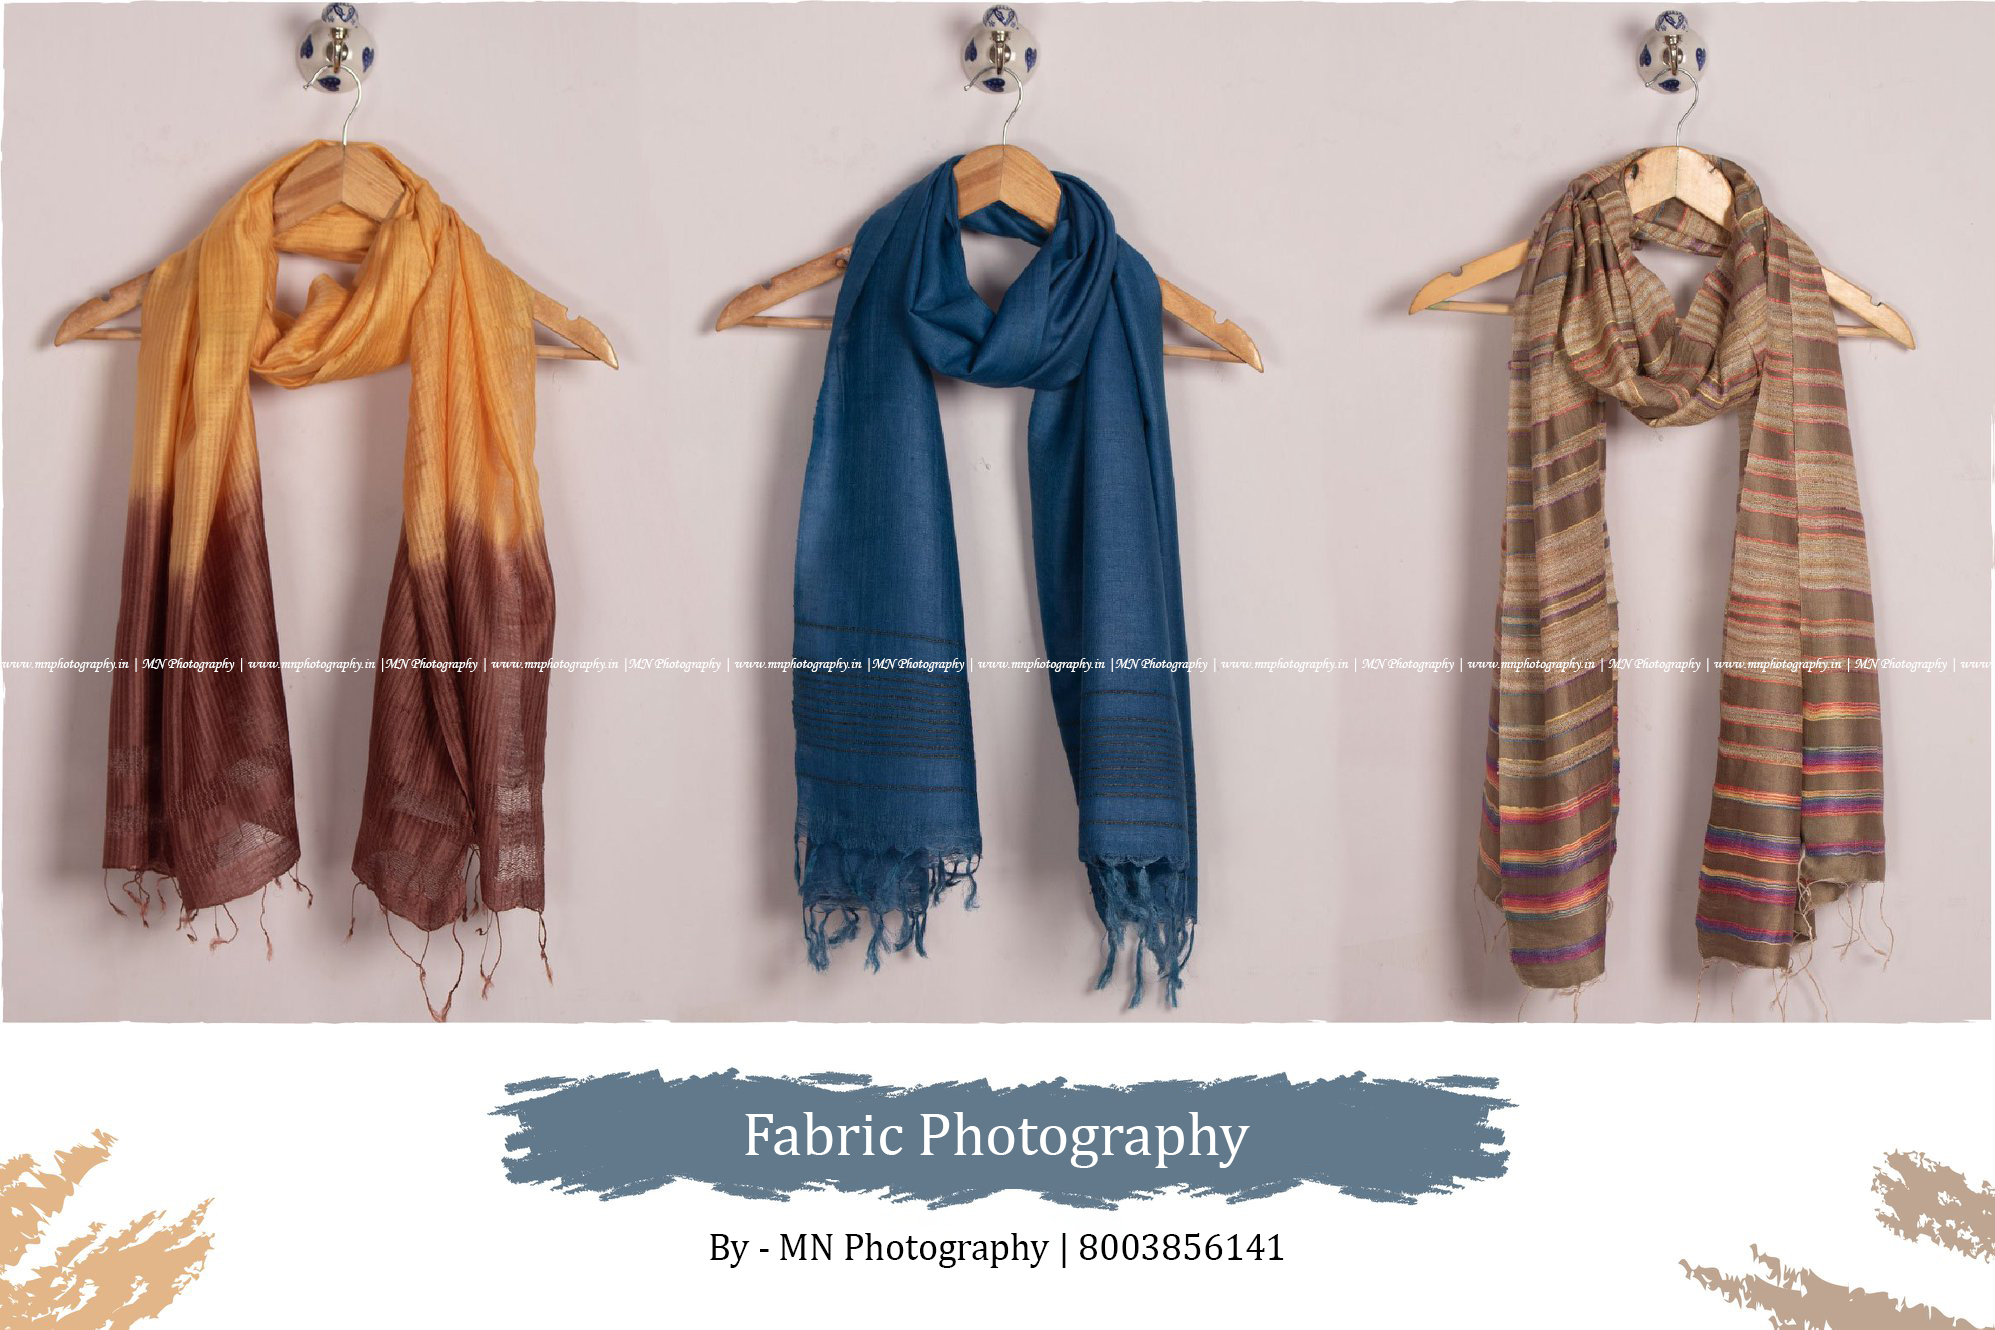 Fabric Photography in Udaipur - MN photography | best fabric photography in Udaipur